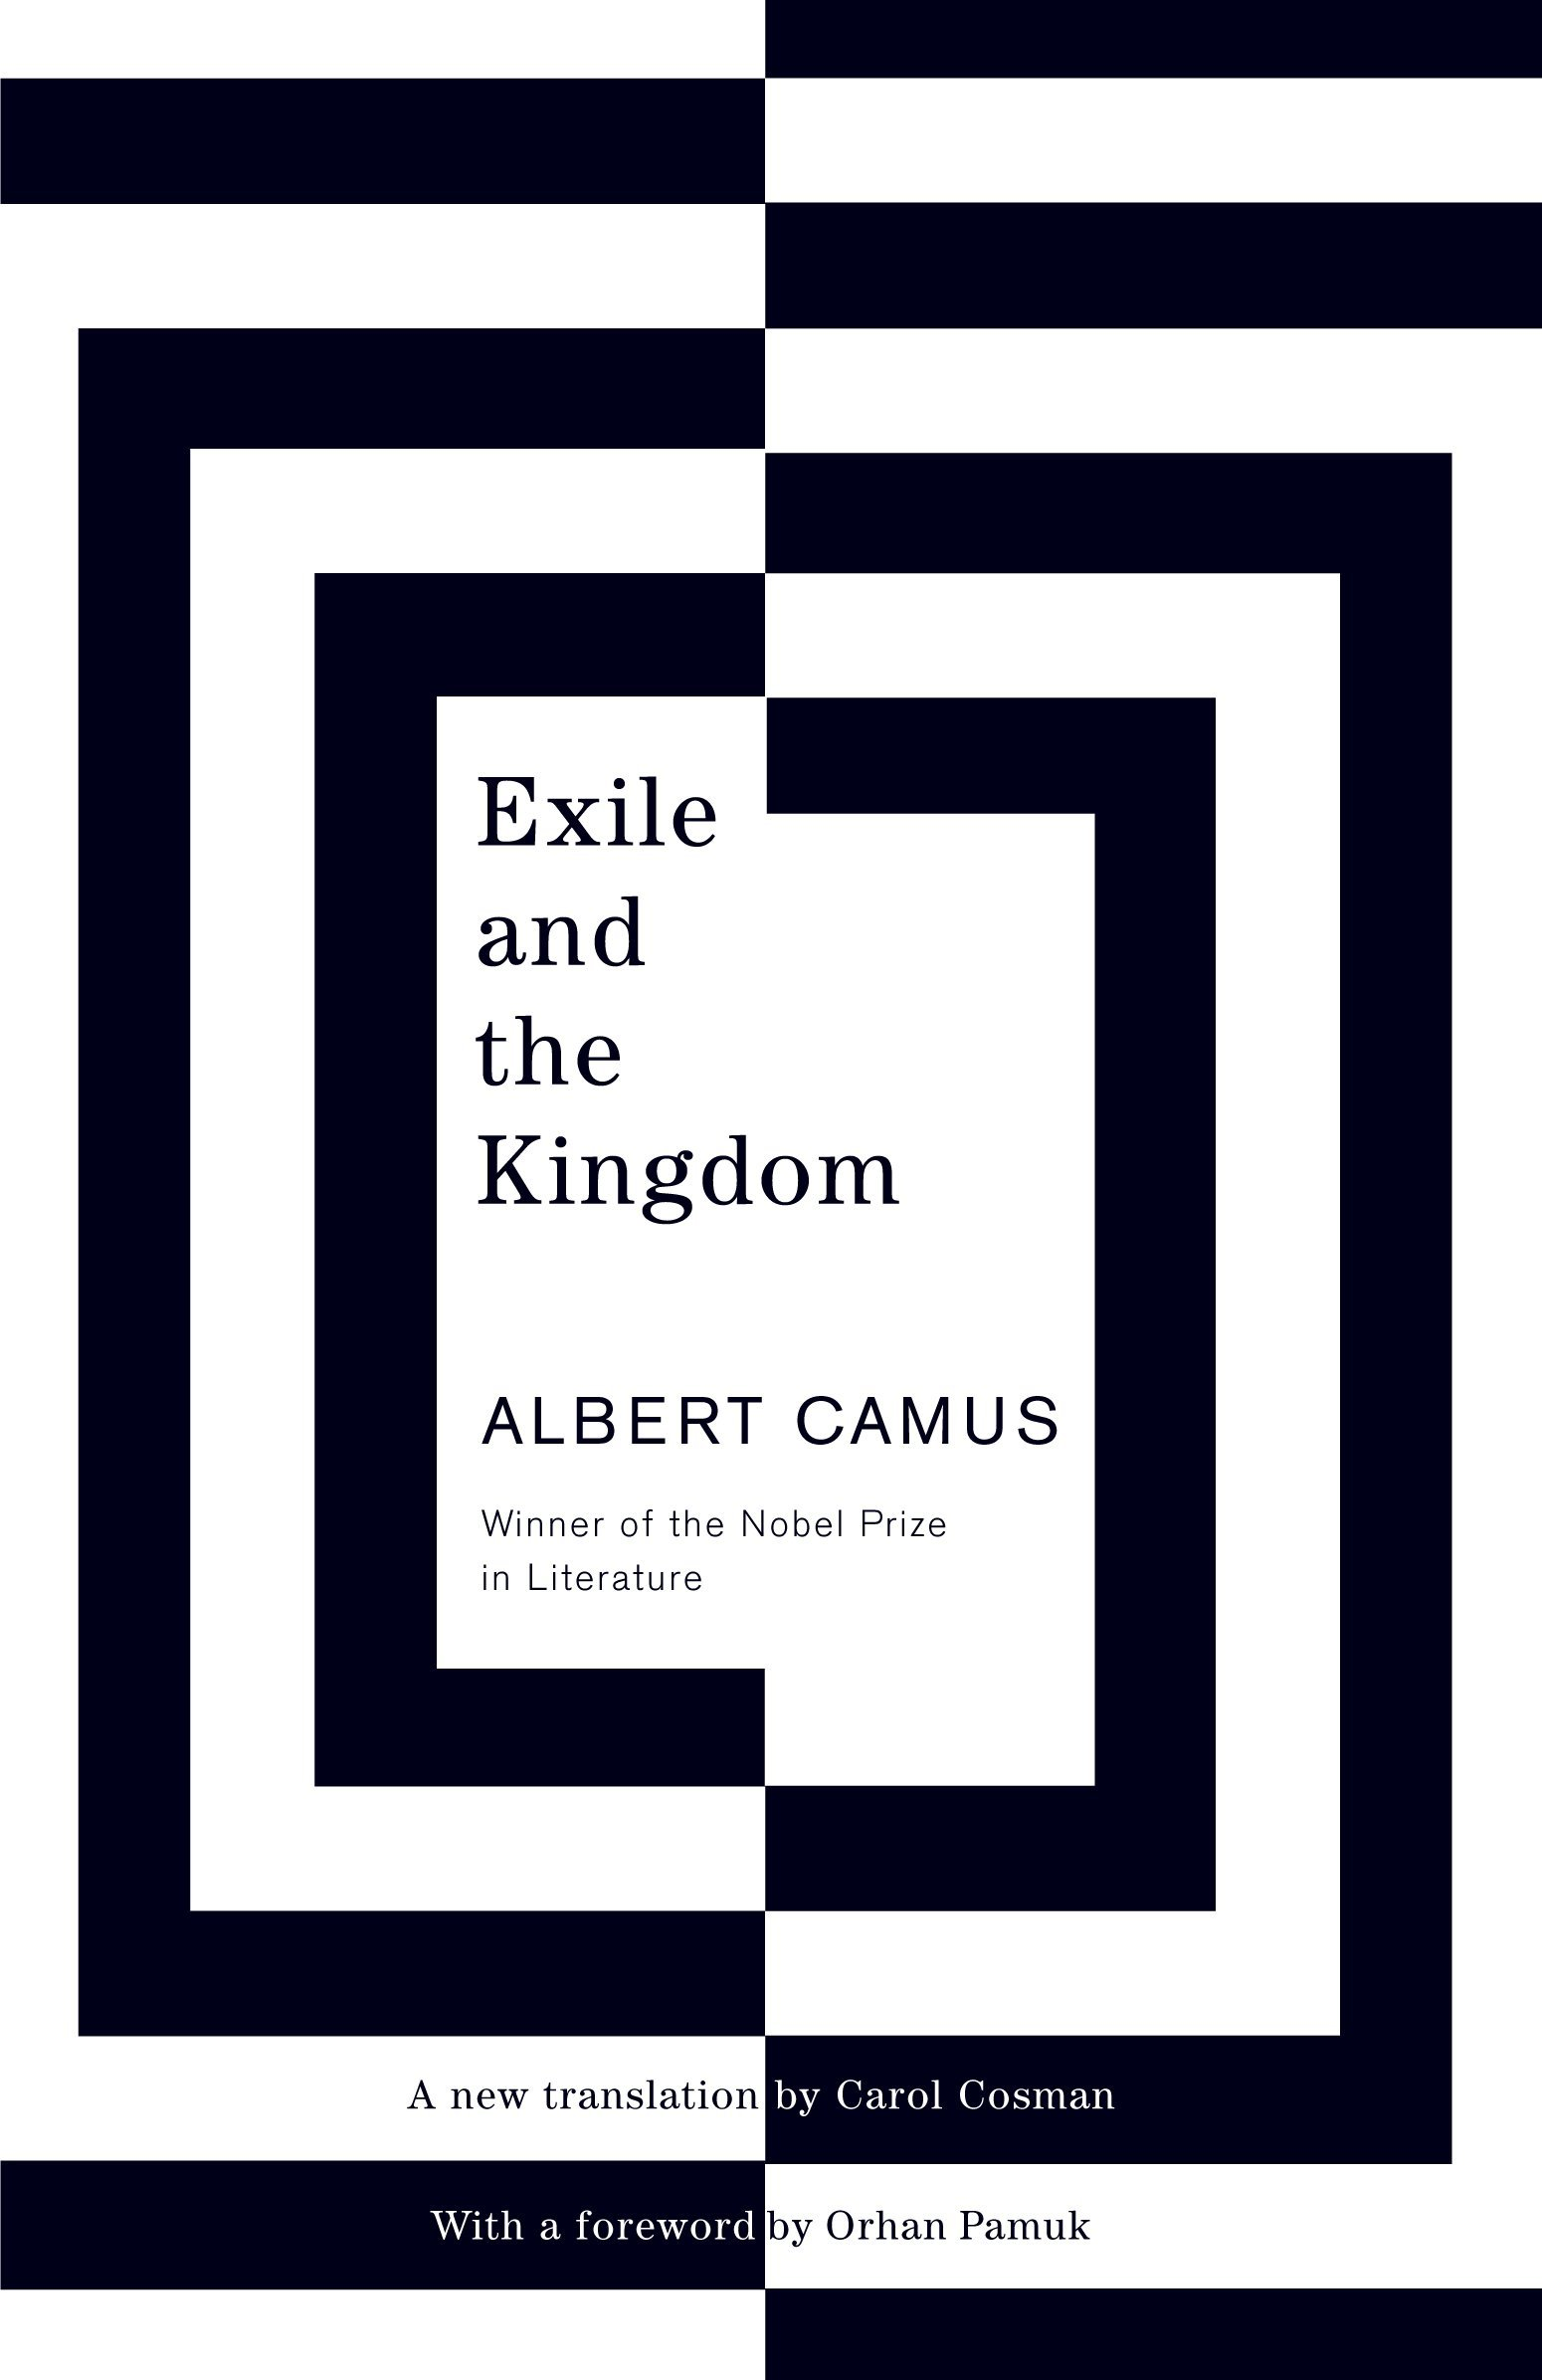 com exile and the kingdom 9780307278586 albert camus books